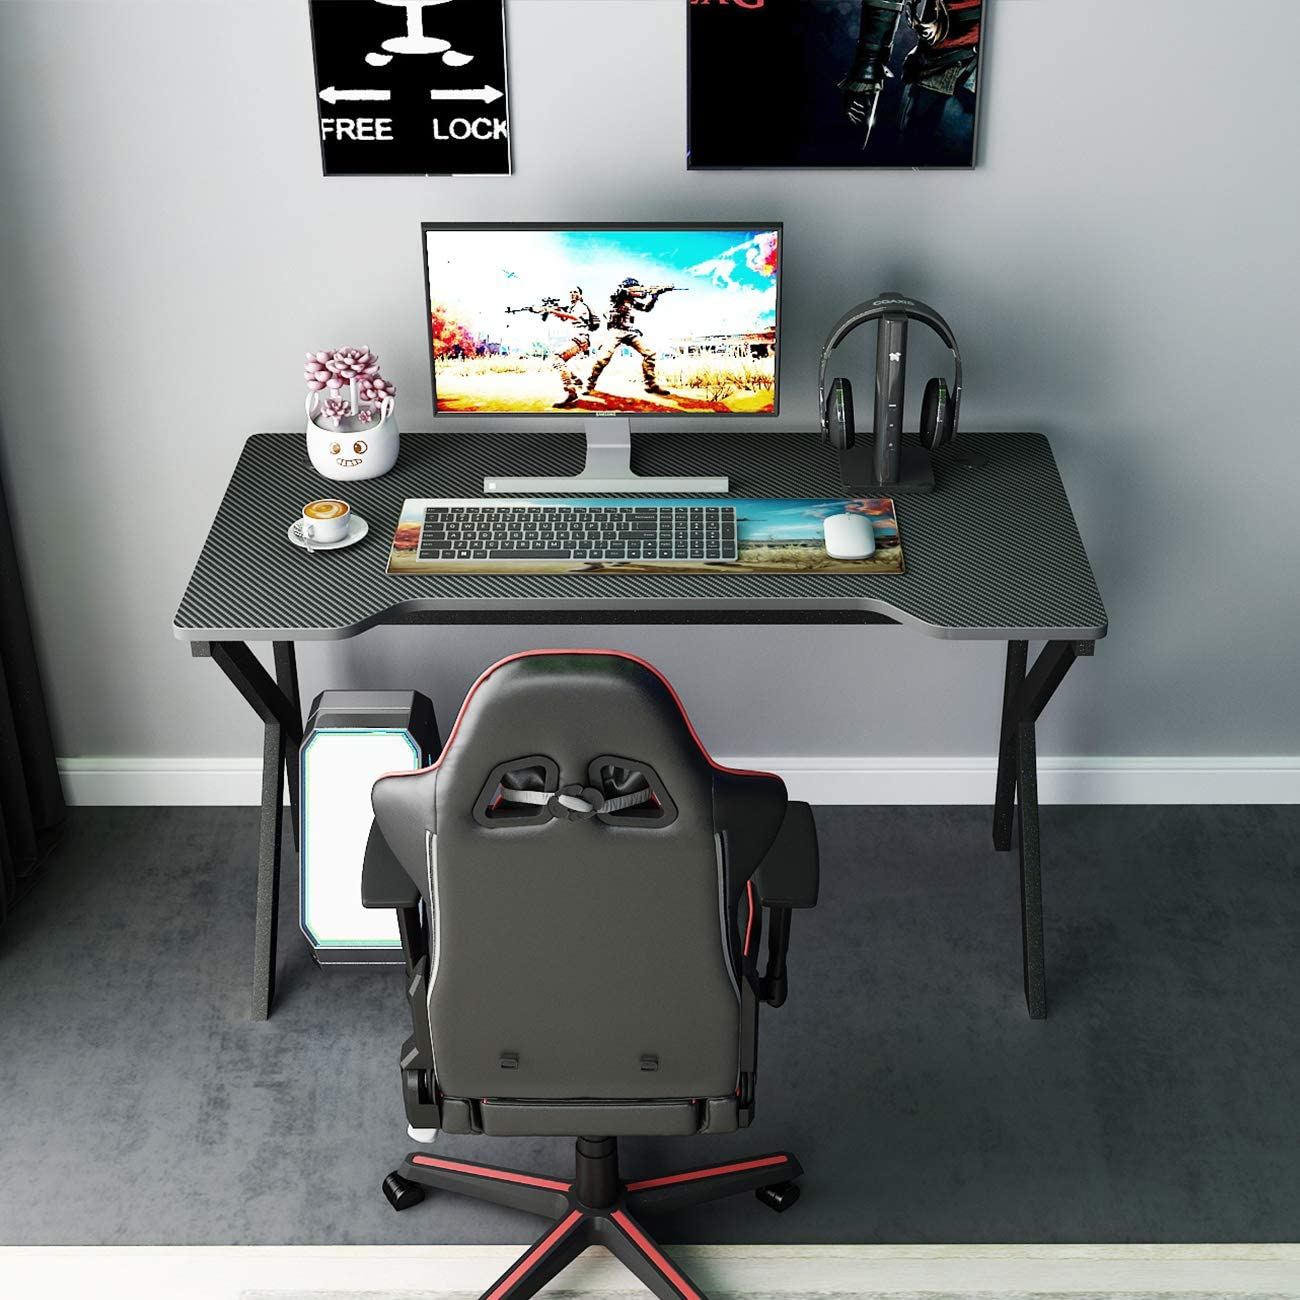 Amazon Com Sogespower Gaming Desk 47 Inches Home Office Computer Table Gamer Desk Splj 1909 120 Kitchen Dining